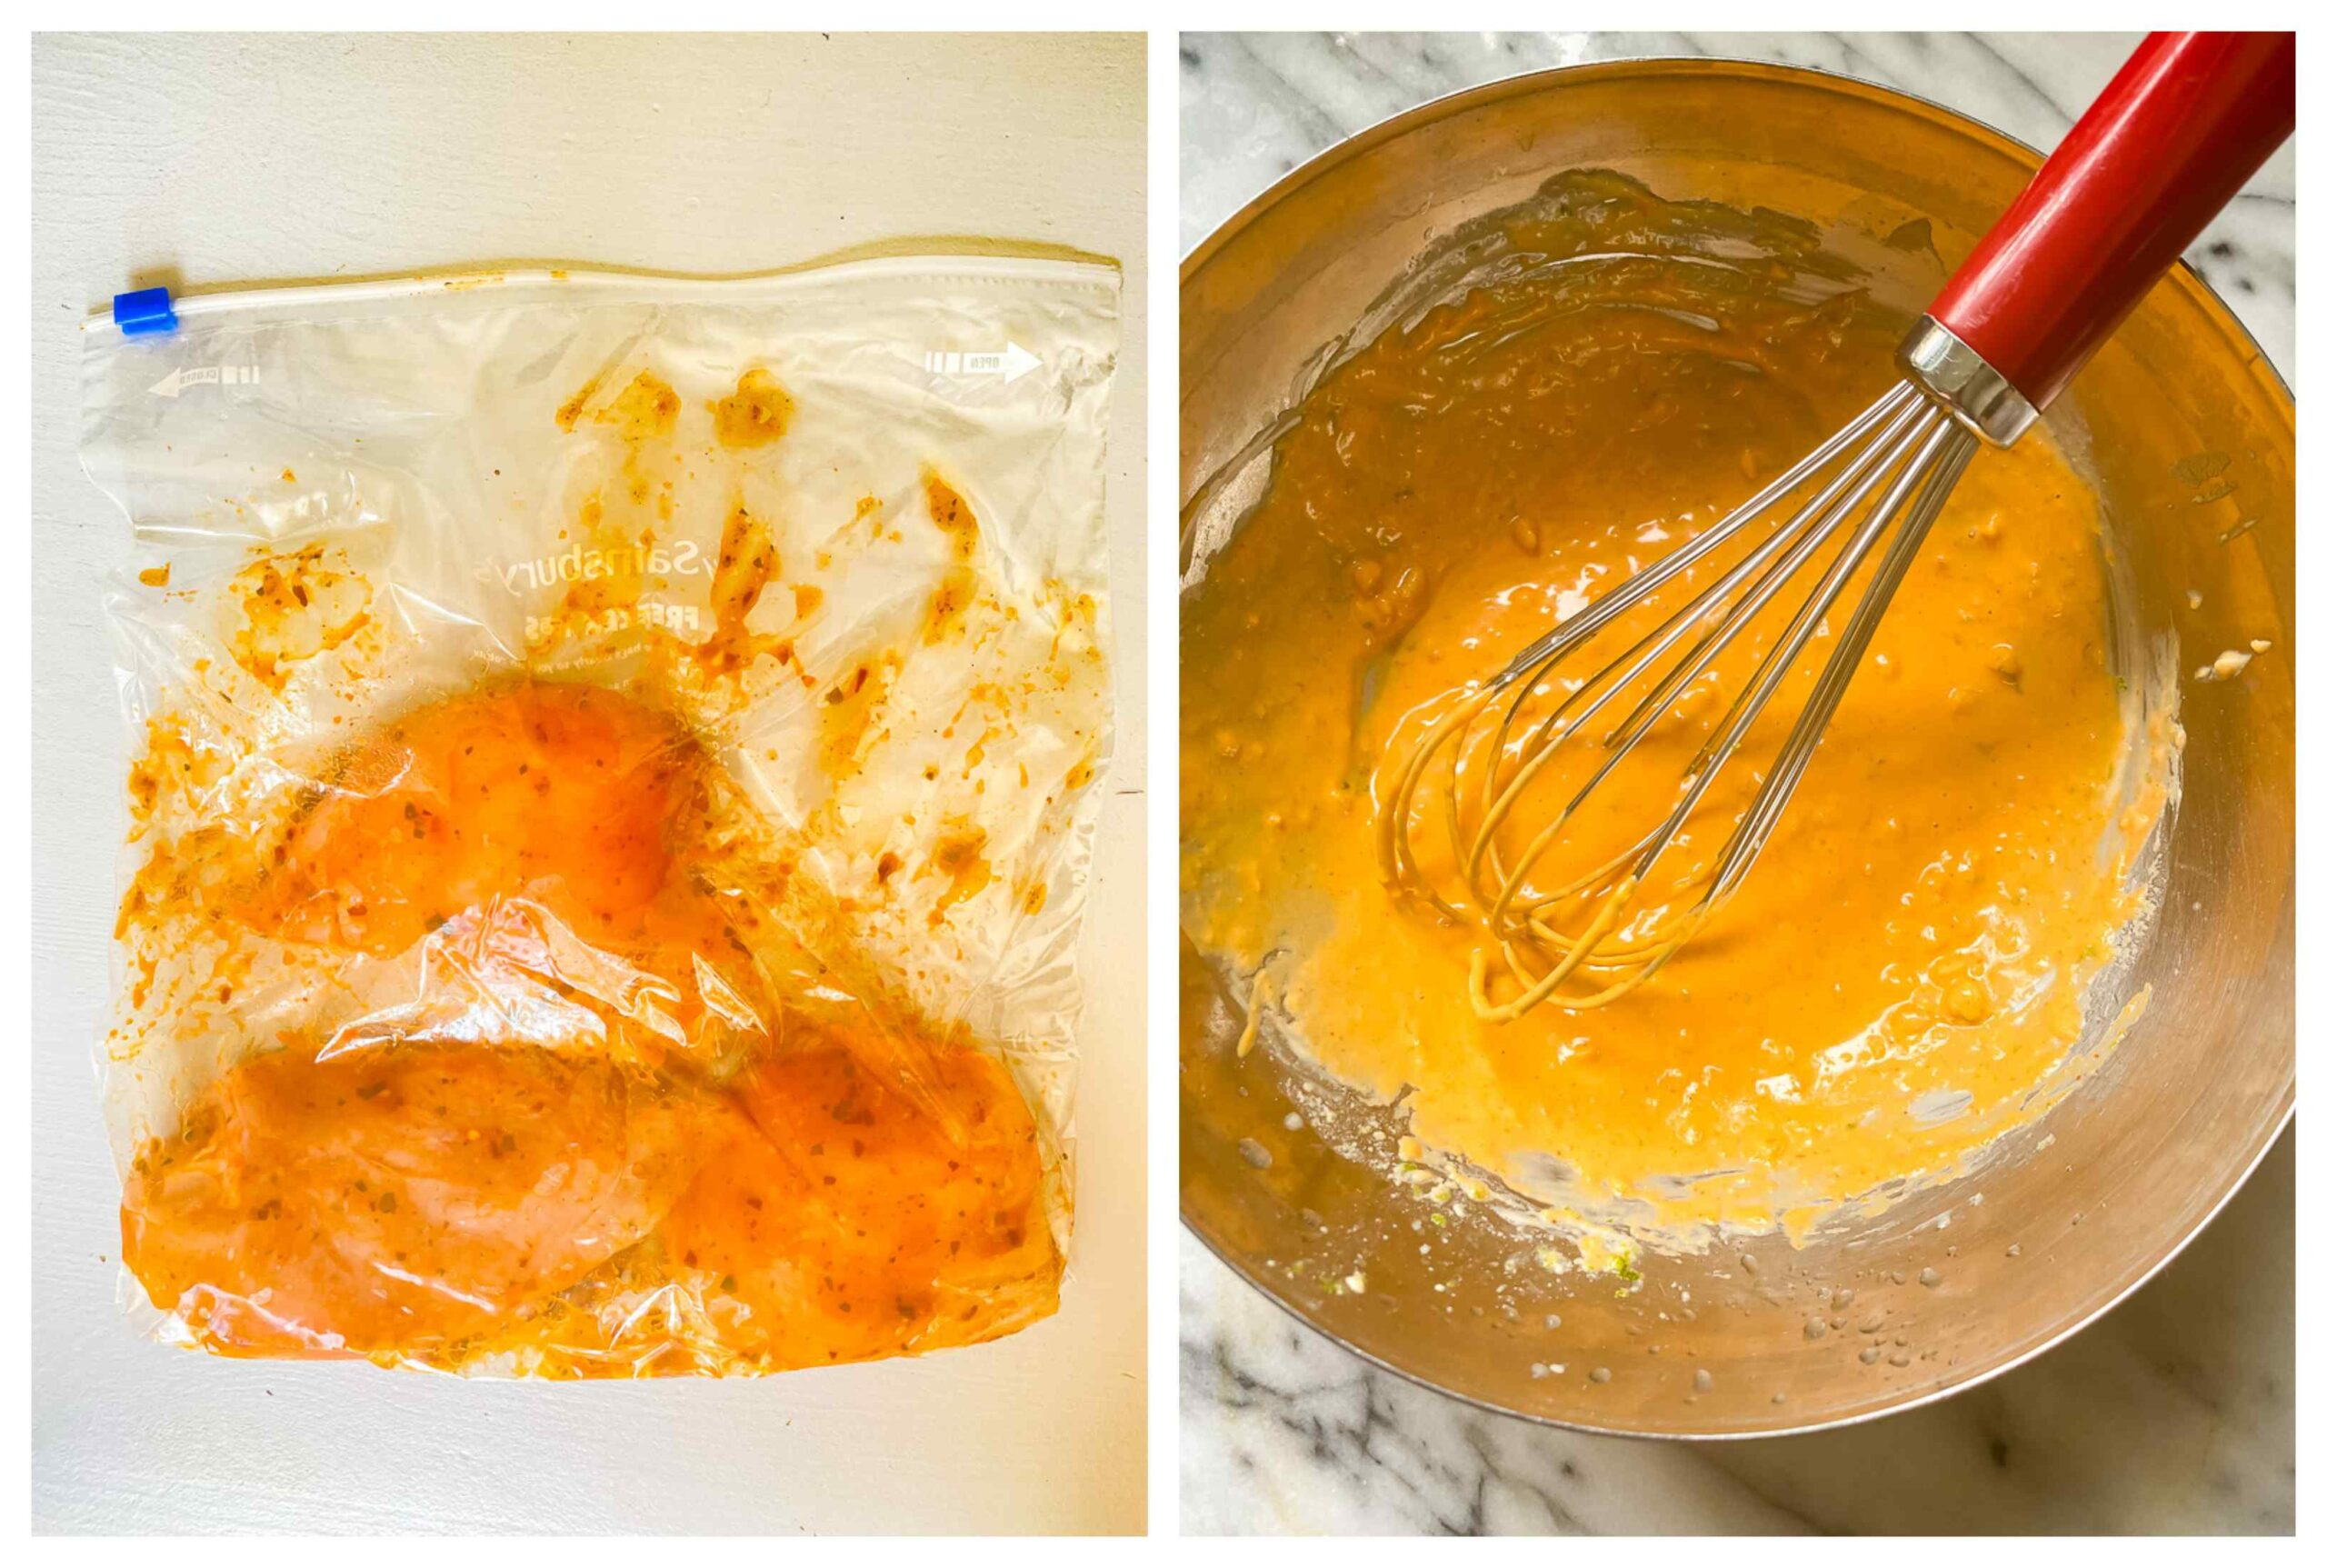 chicken breasts in marinade in ziploc bag, peanut sauce in a bowl with a whisk